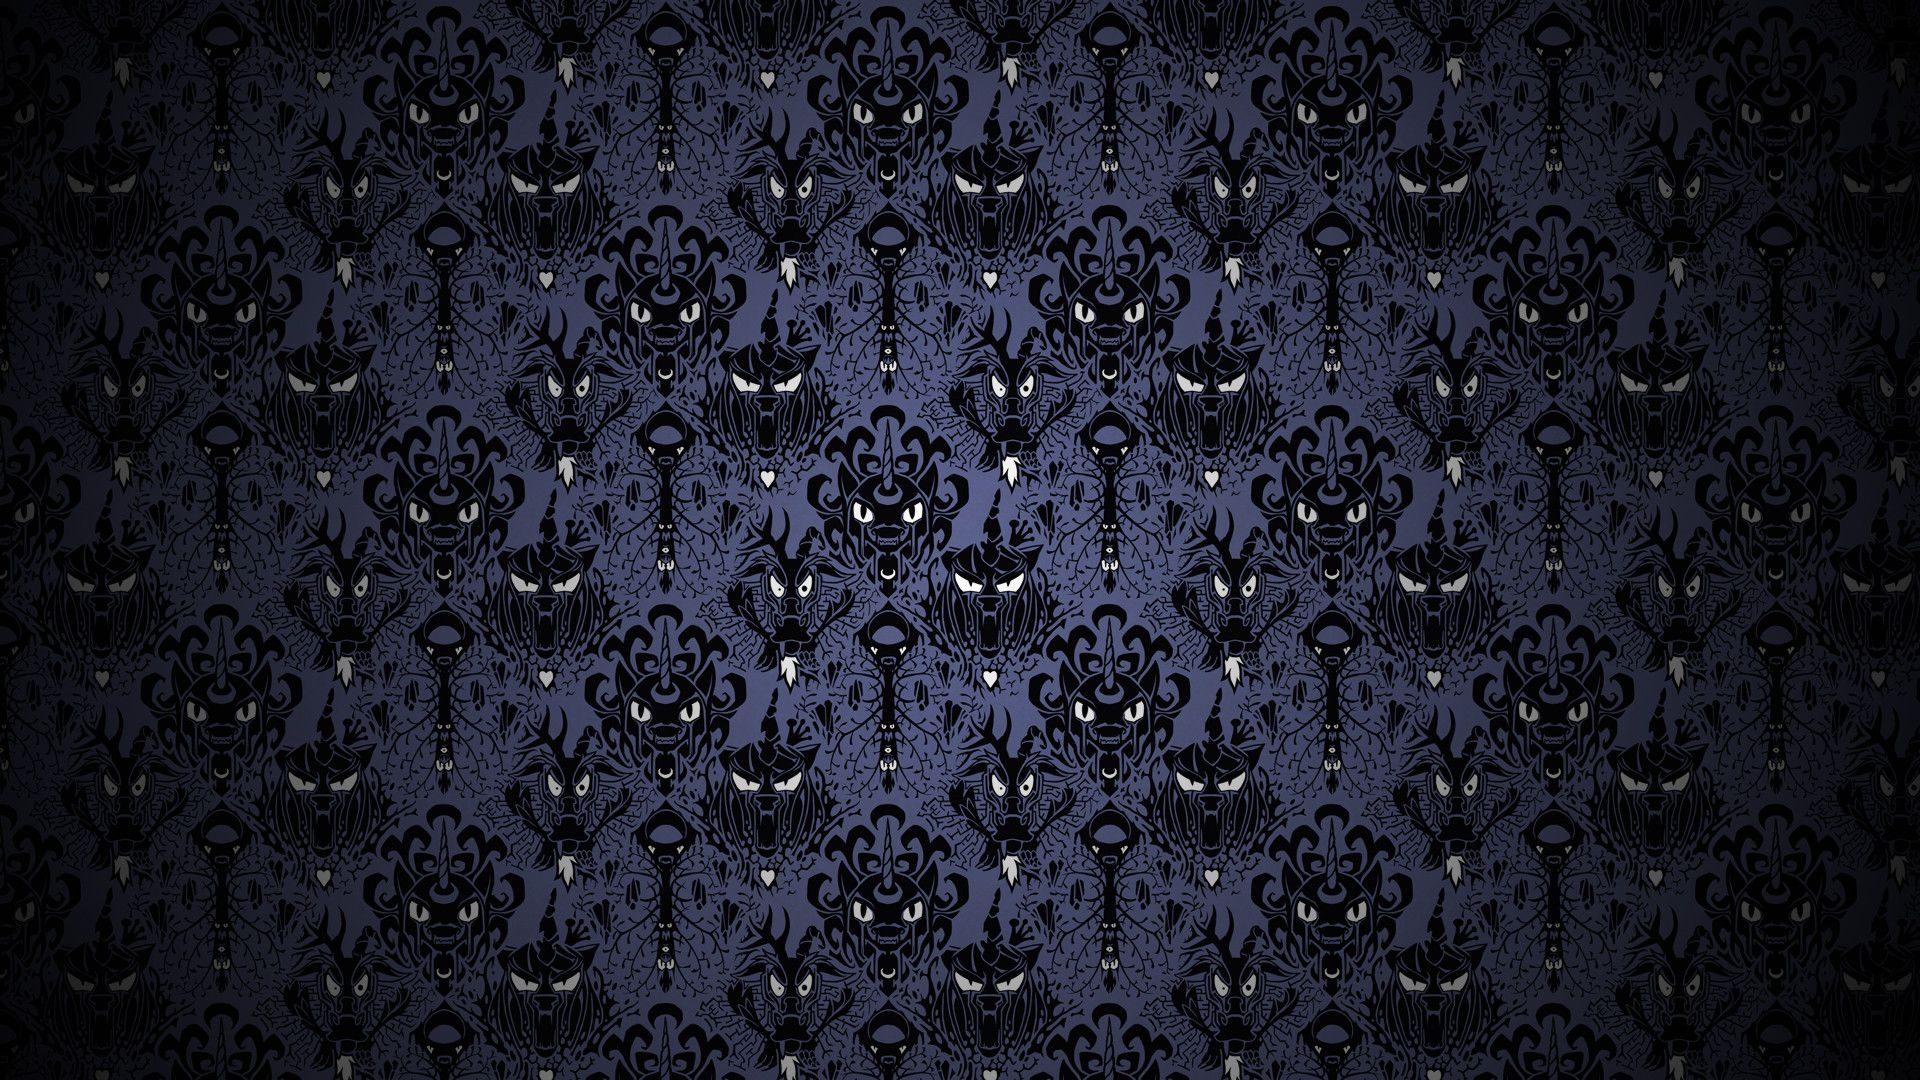 Haunted Mansion Wallpapers Top Free Haunted Mansion Backgrounds Wallpaperaccess